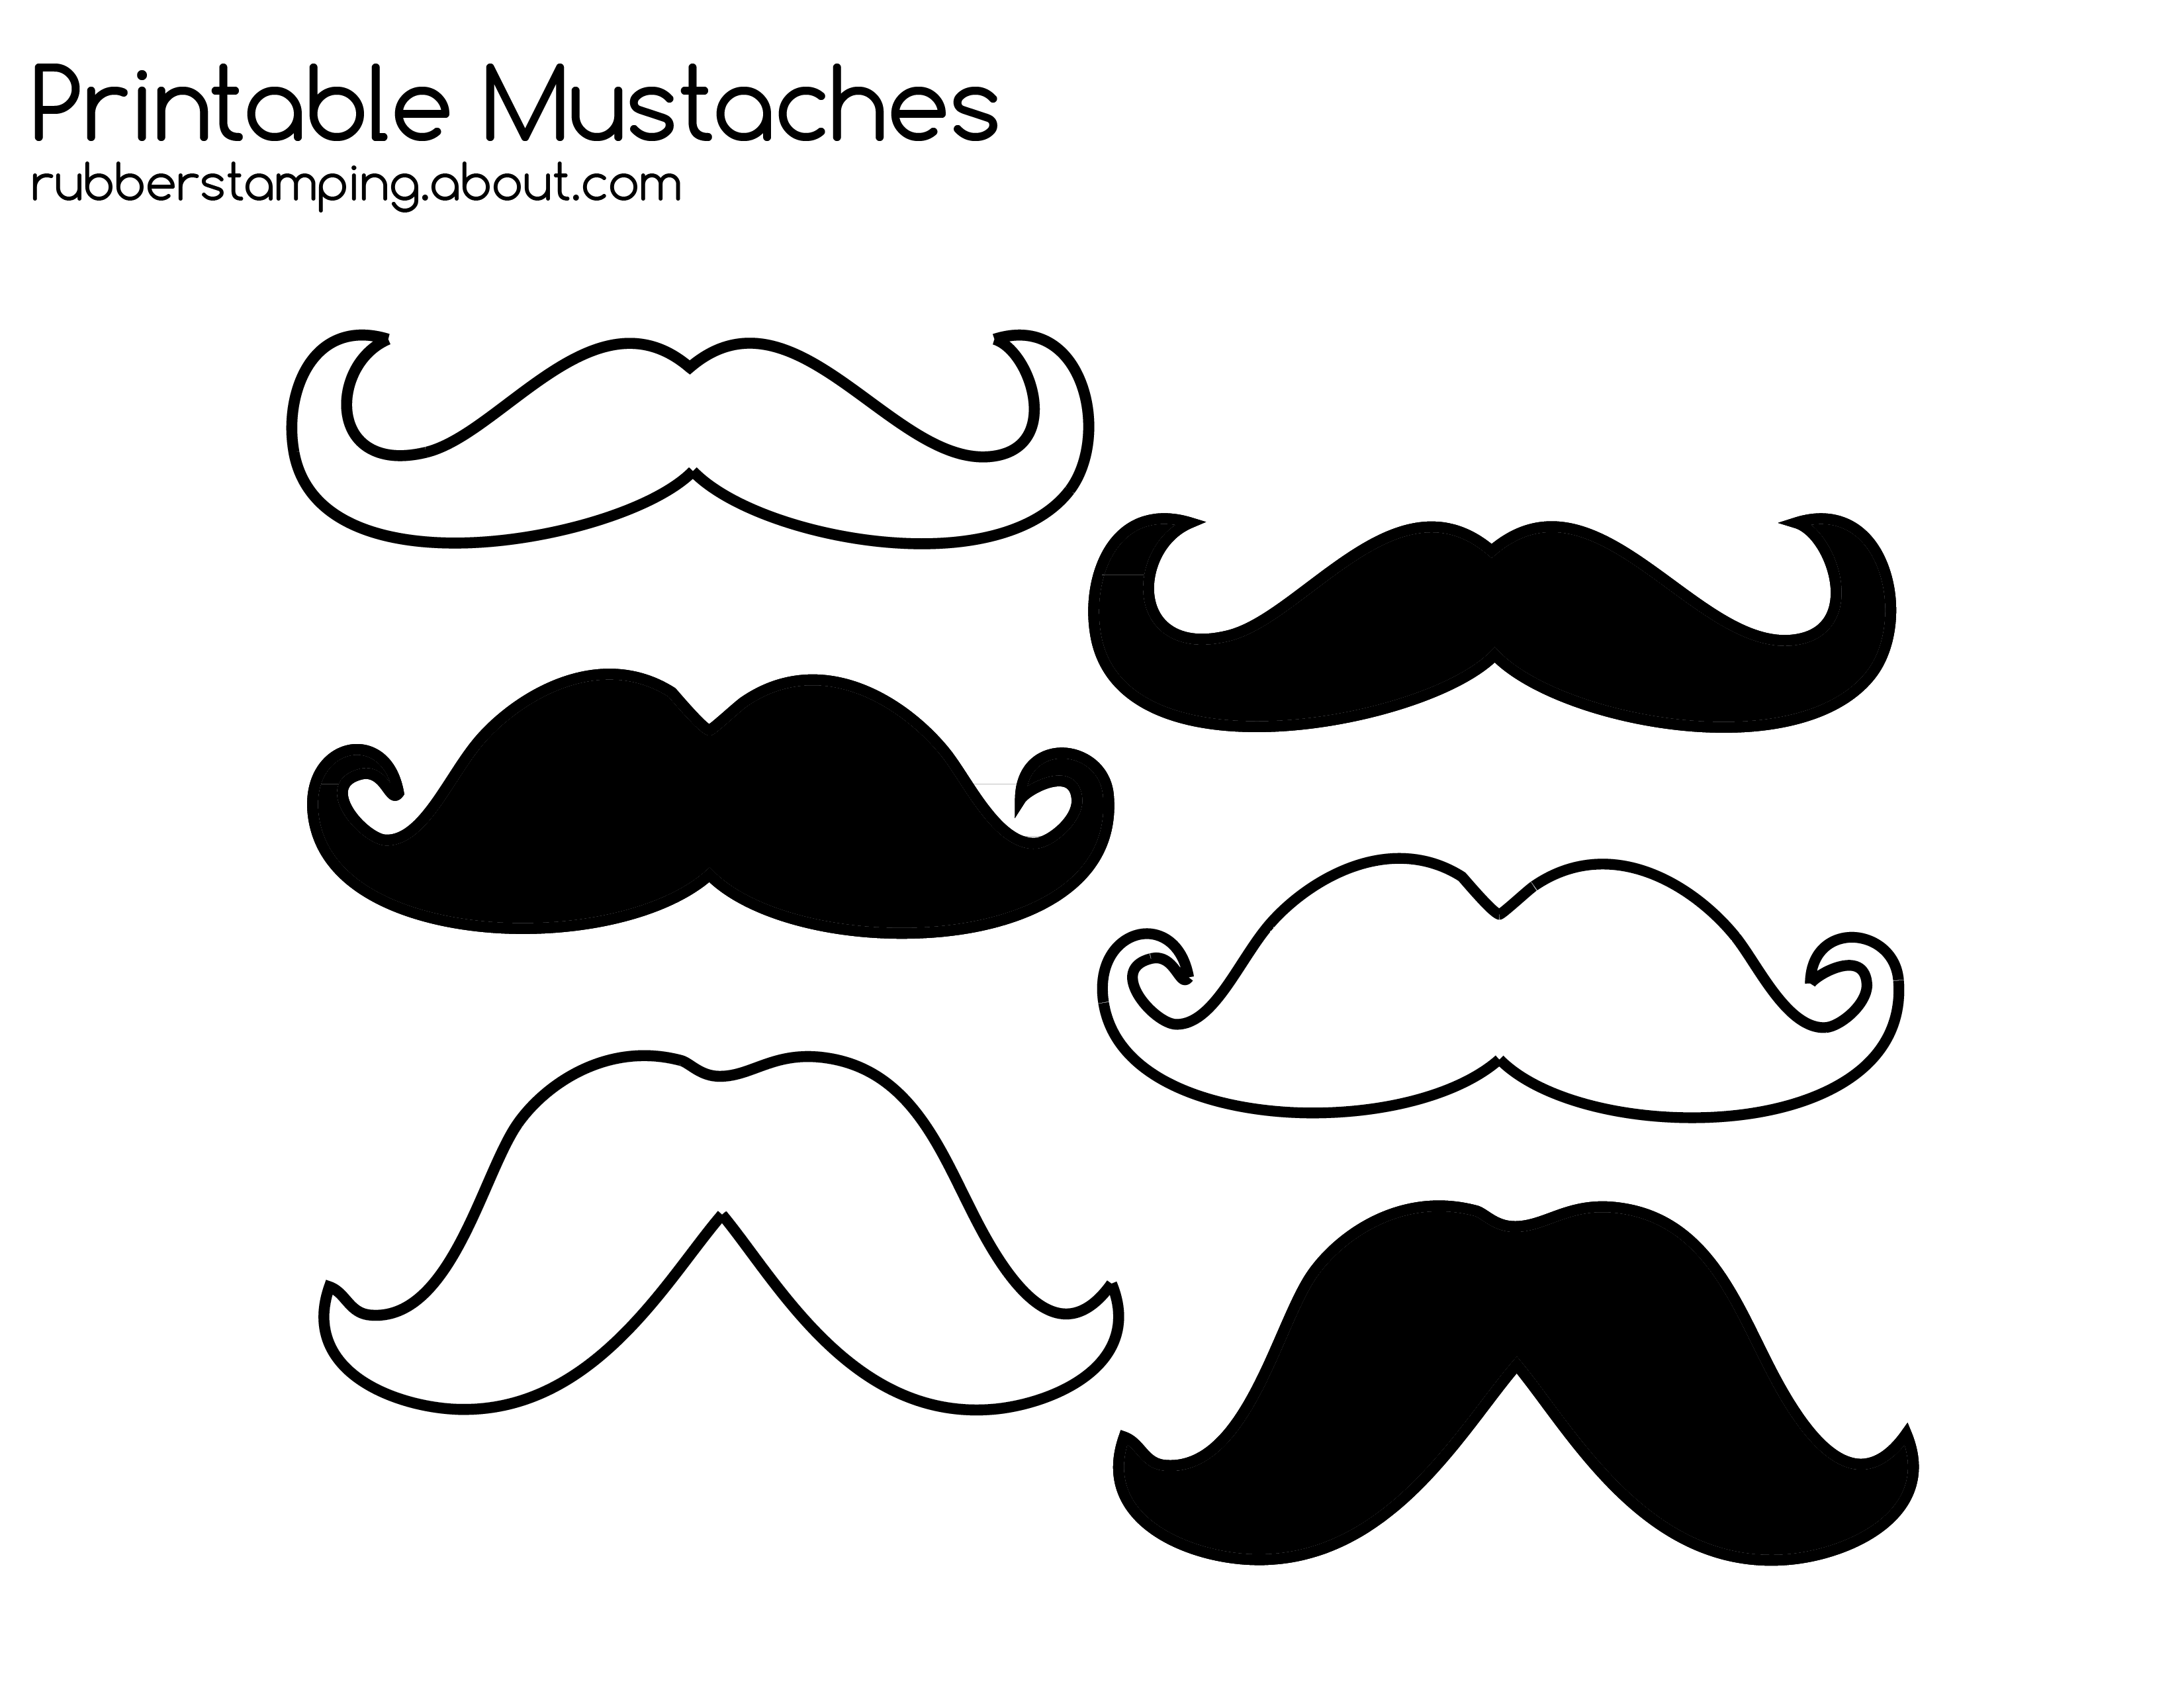 Moustache clipart handlebar mustache. Drawing at getdrawings com